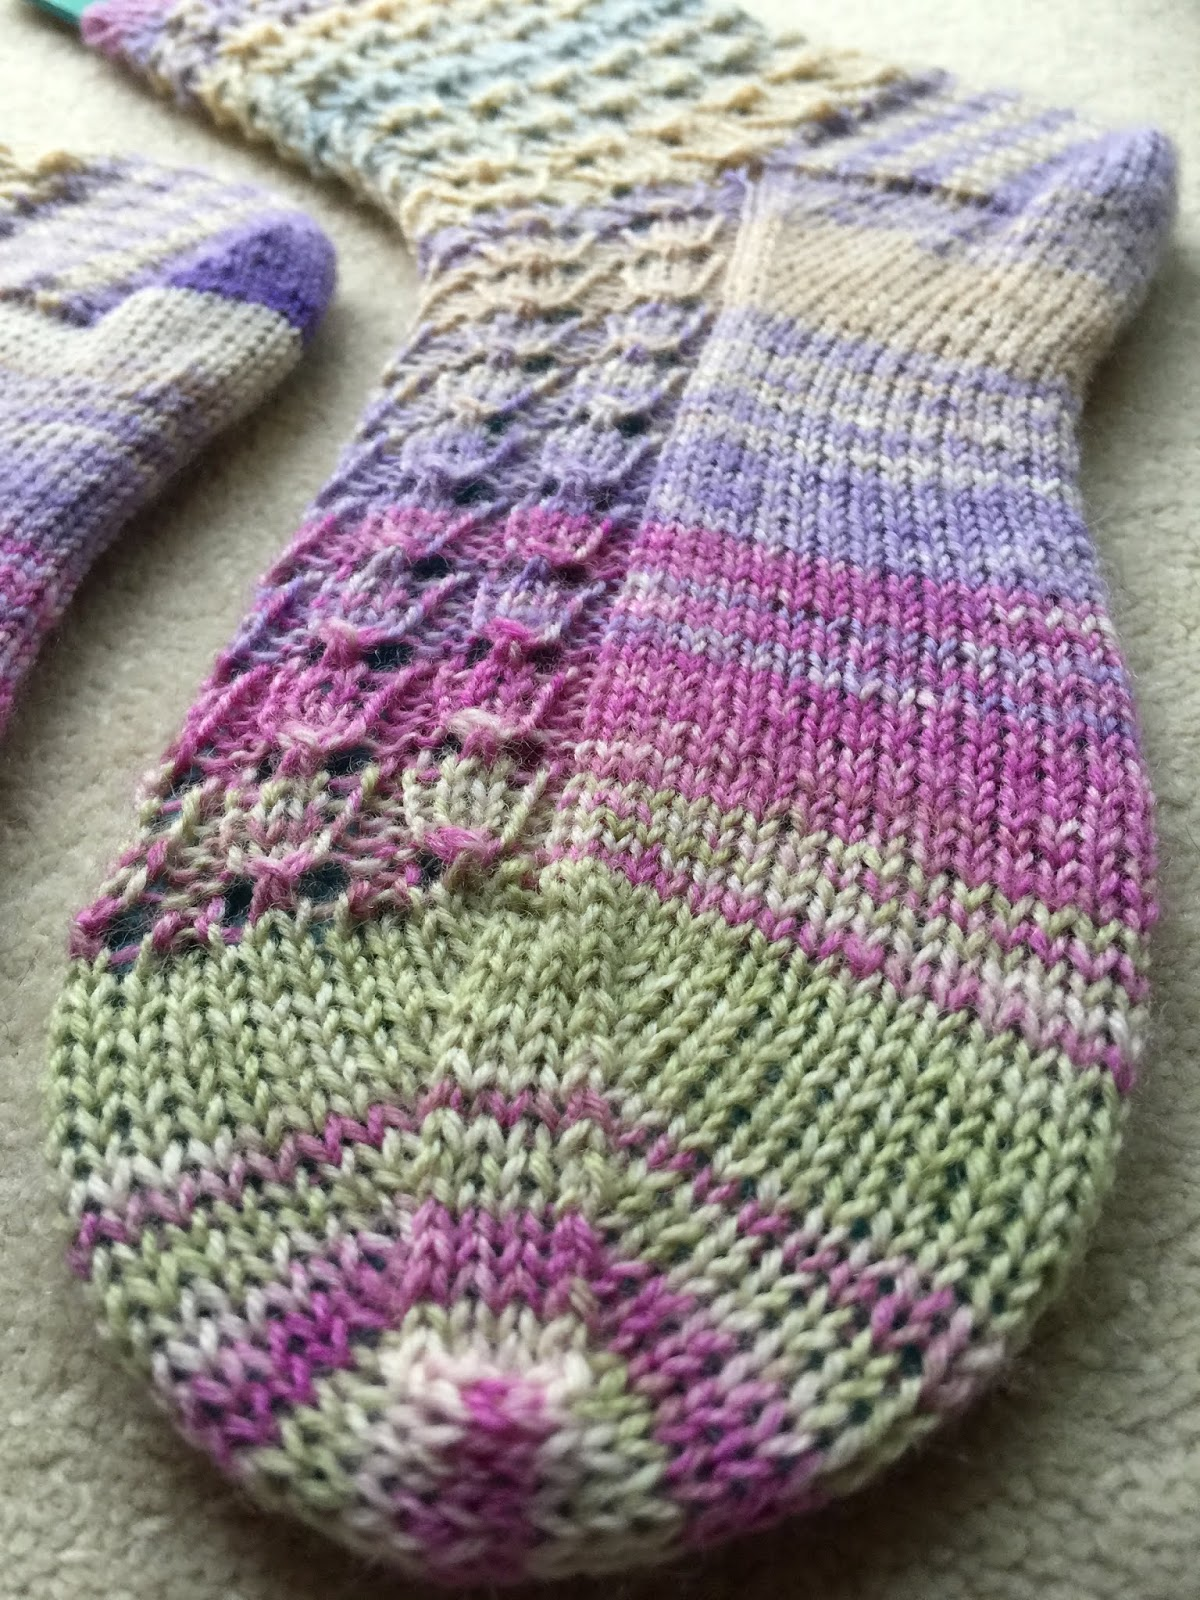 The Woolly Adventures of a Knitting Kitty: Tiptoe